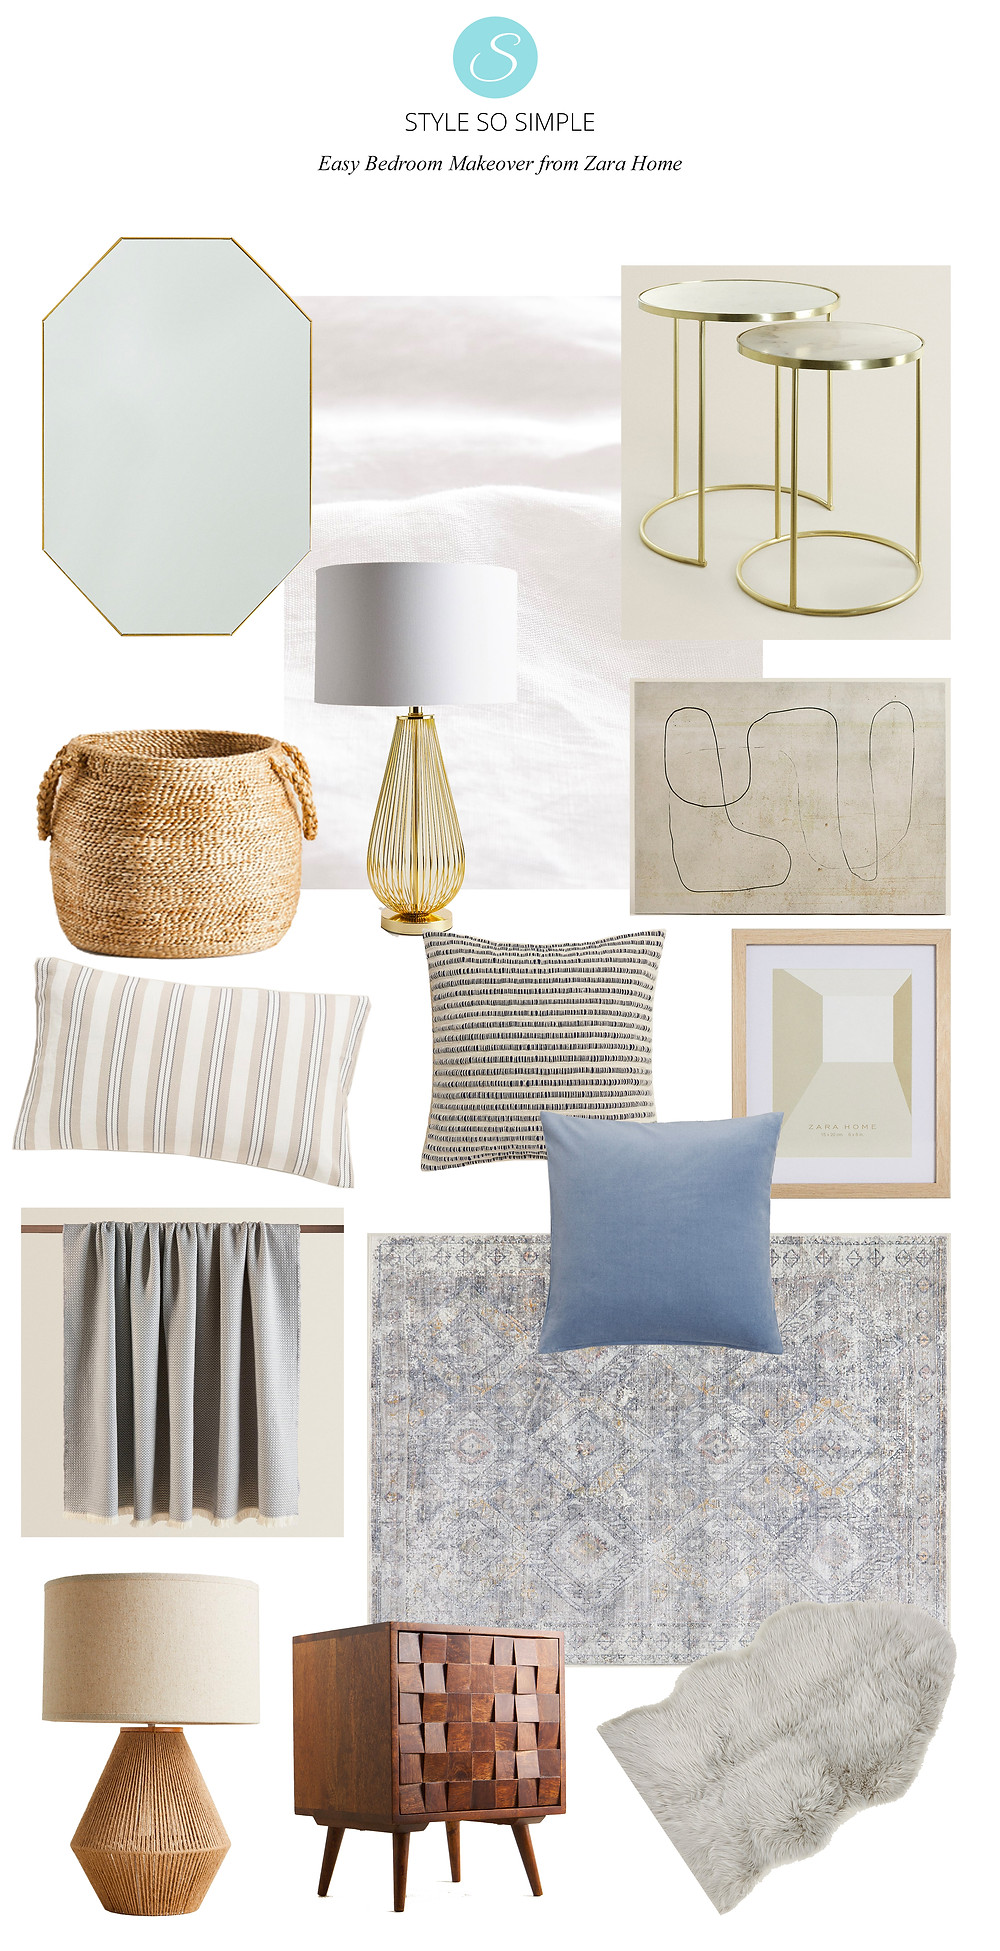 Style So Simple Bedroom Moodboard from H&M